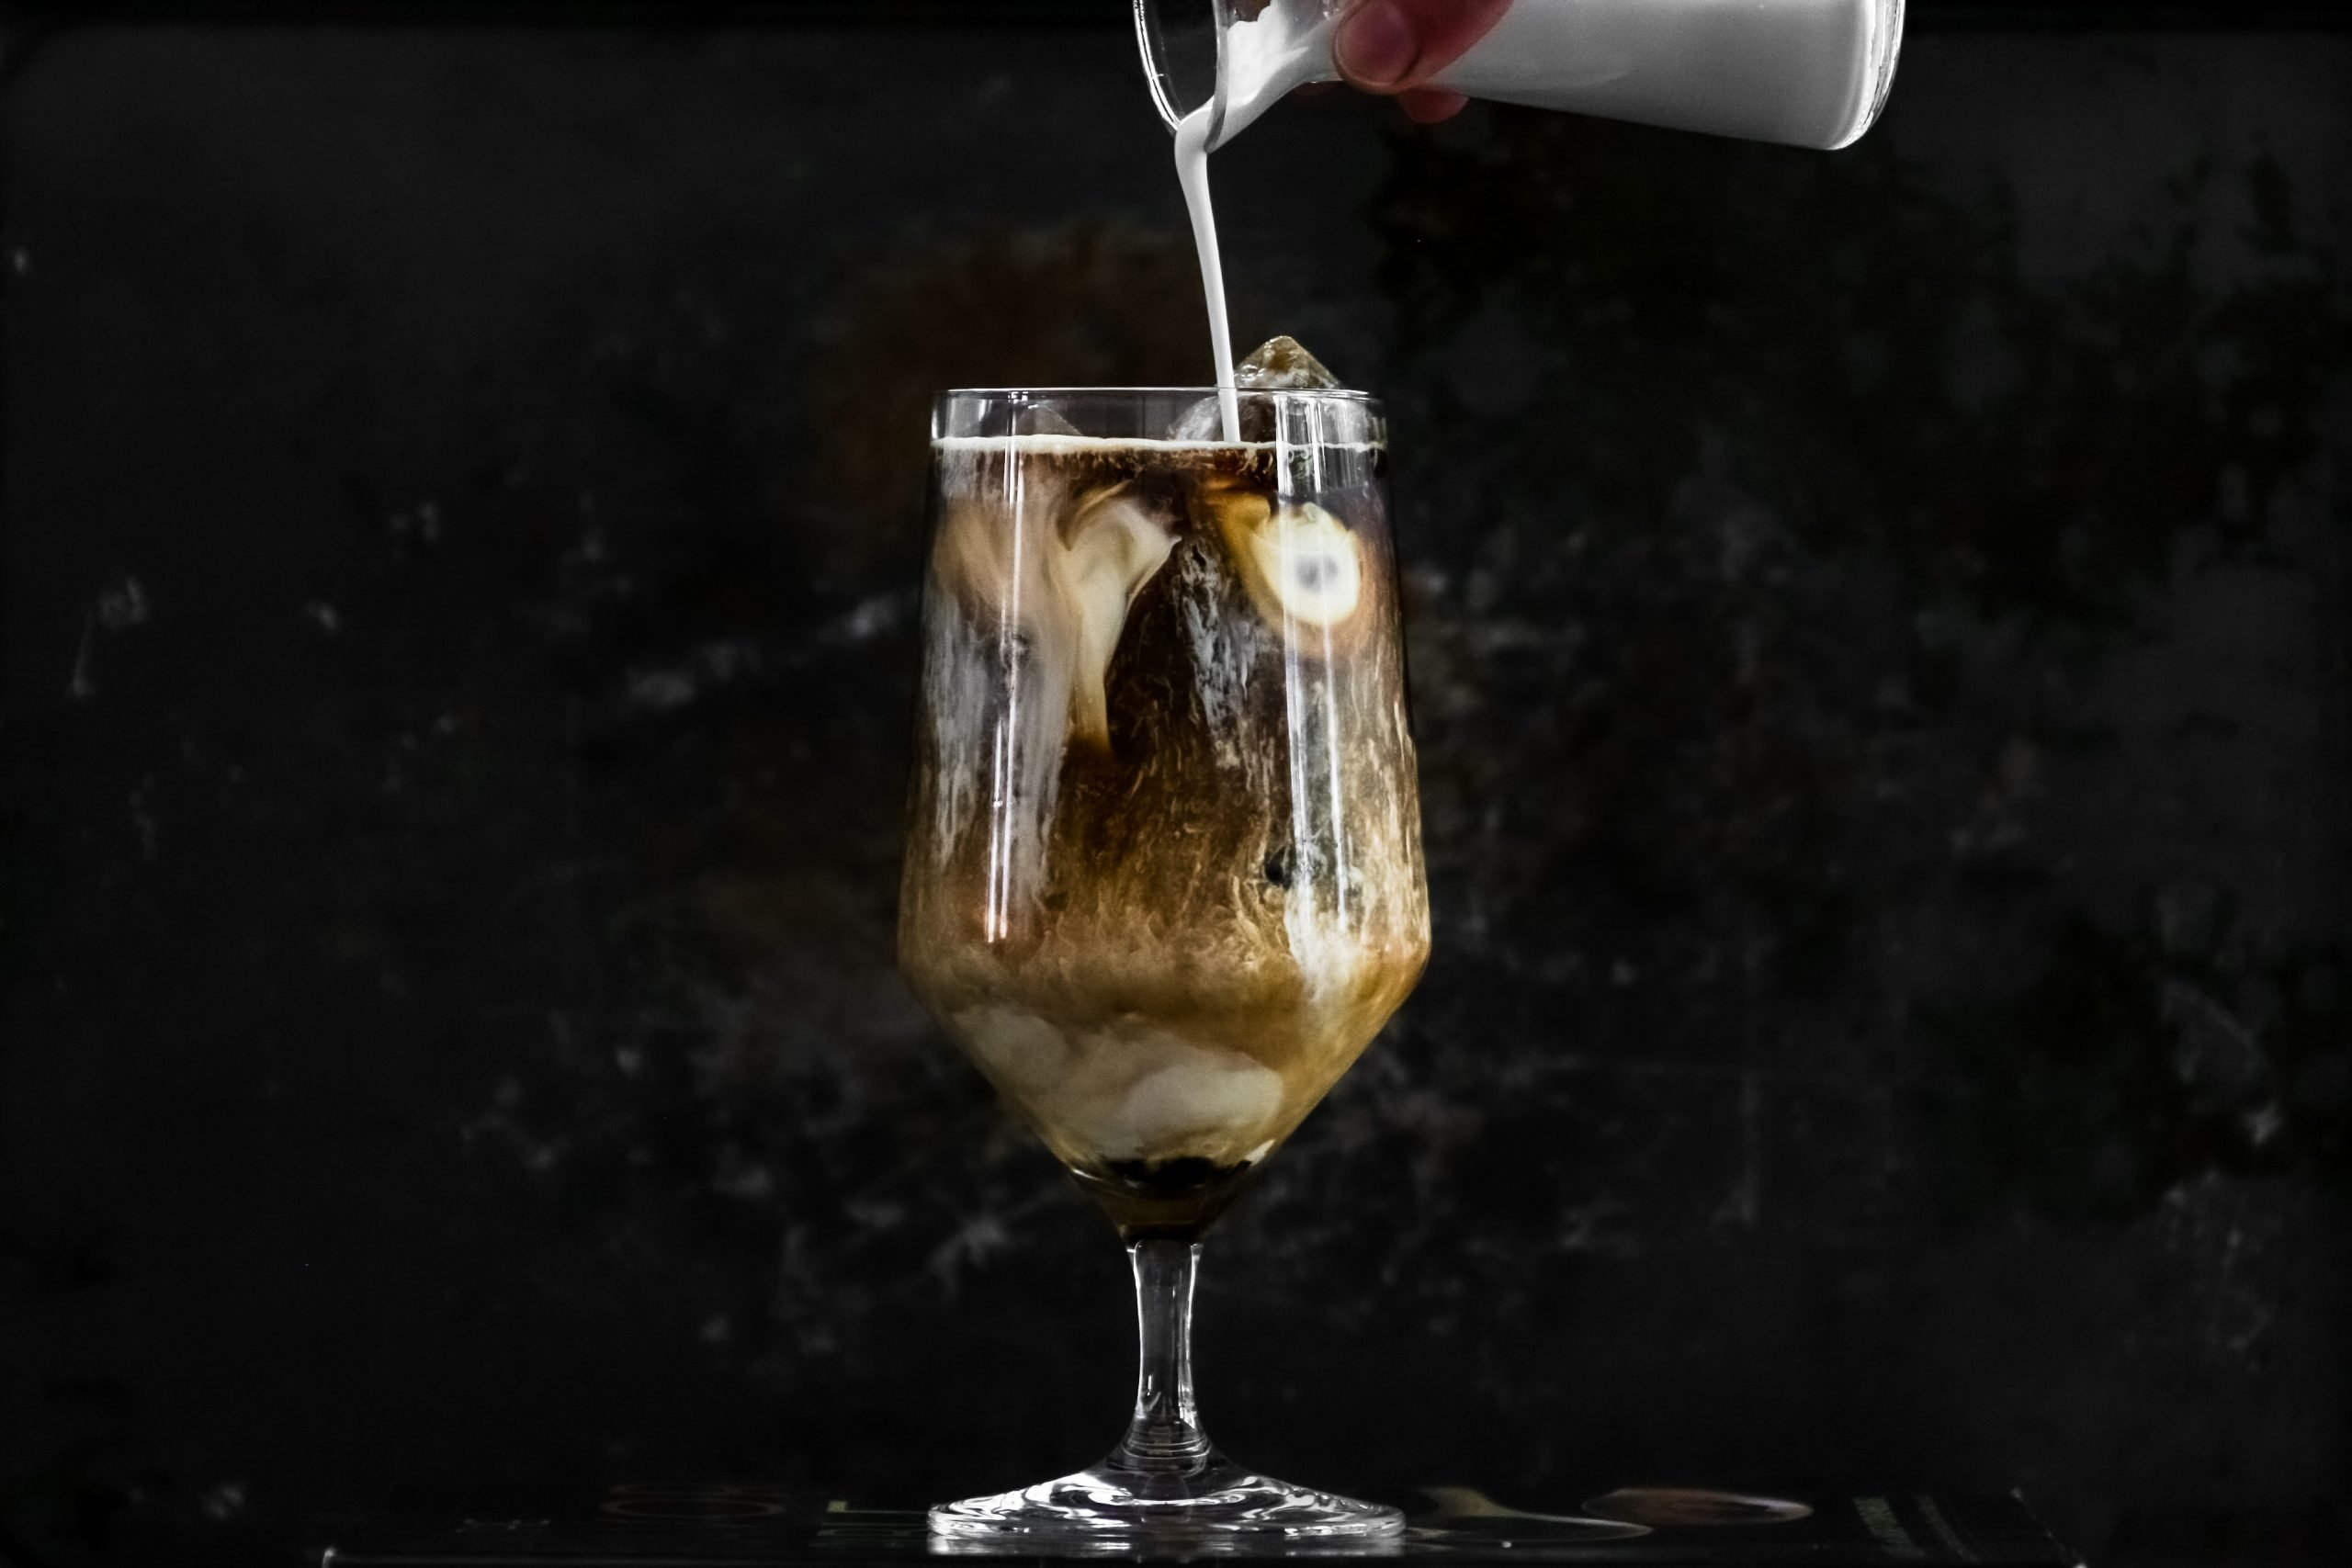 Food photography of pouring cream into iced coffee